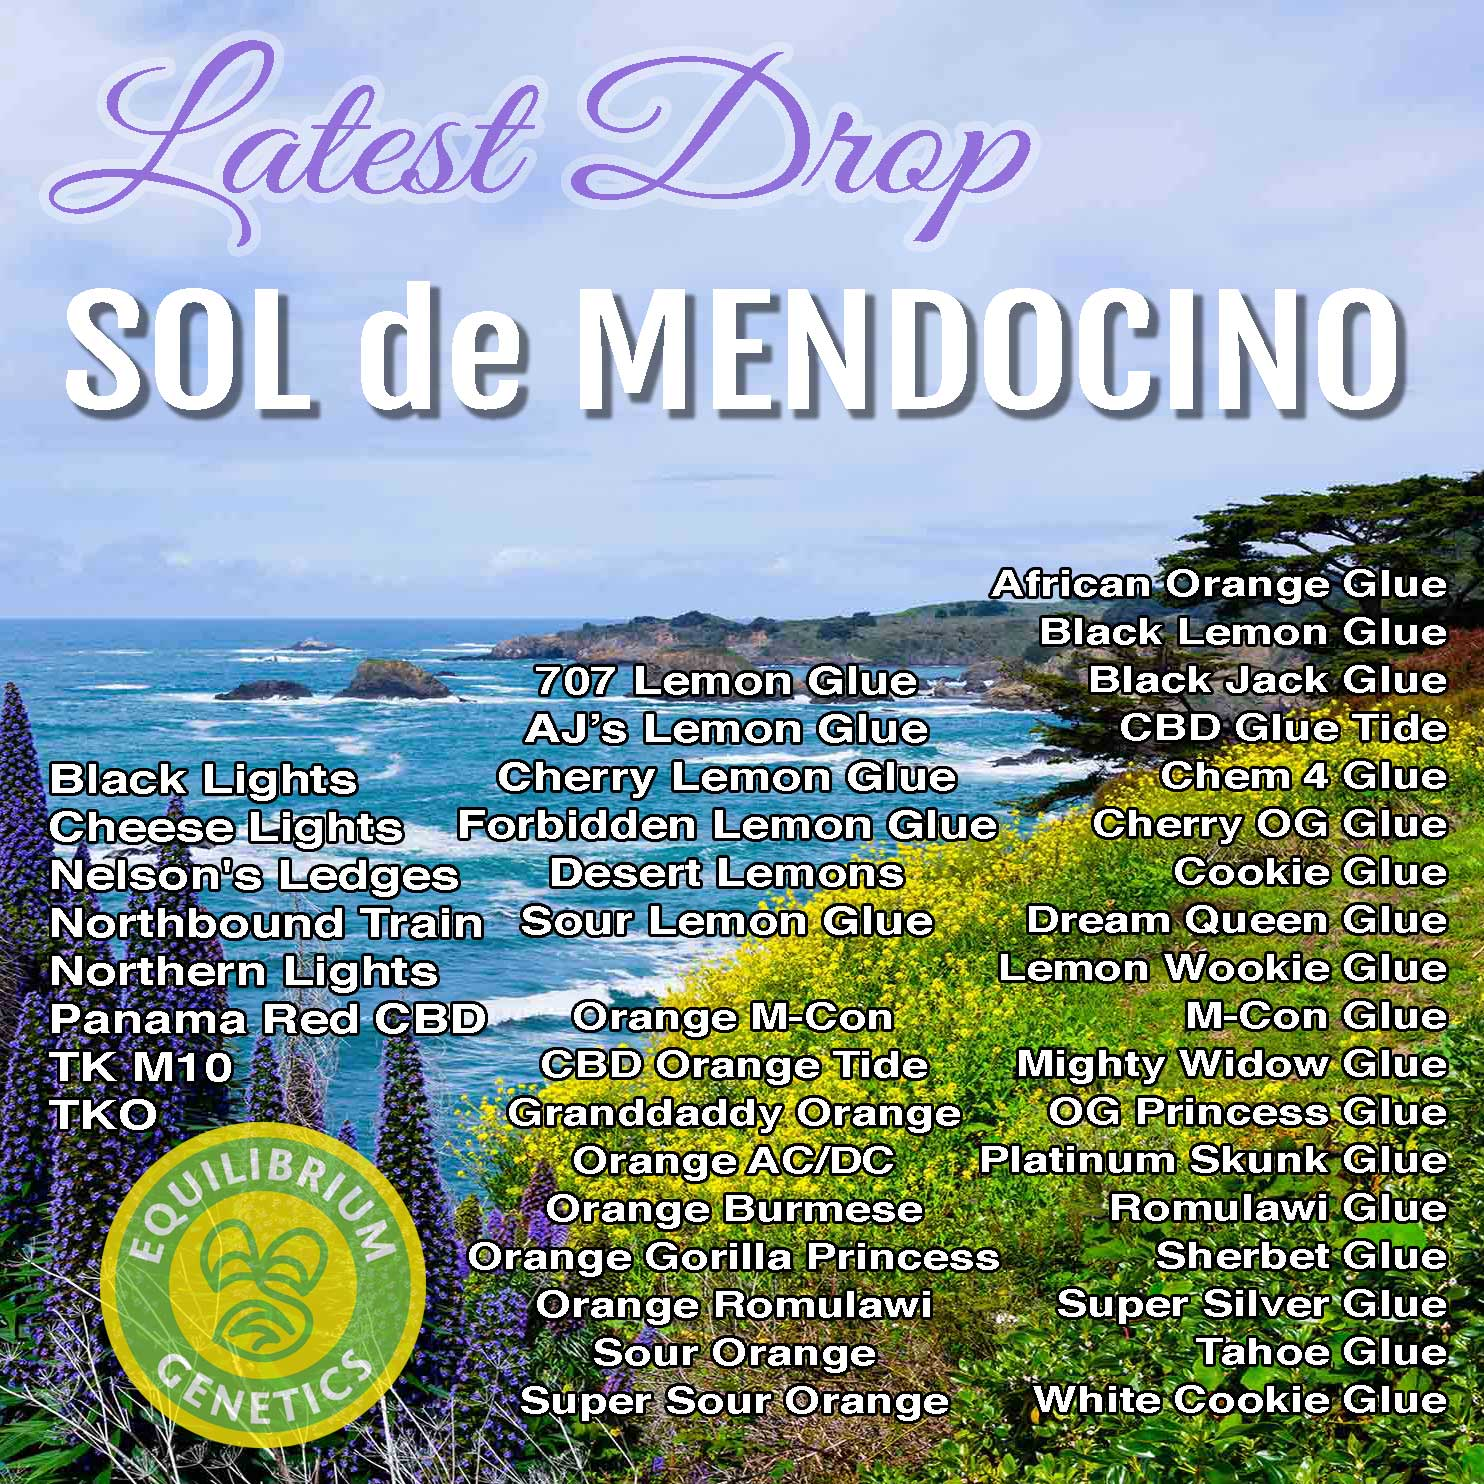 Latest Drop: Sol de Mendocino